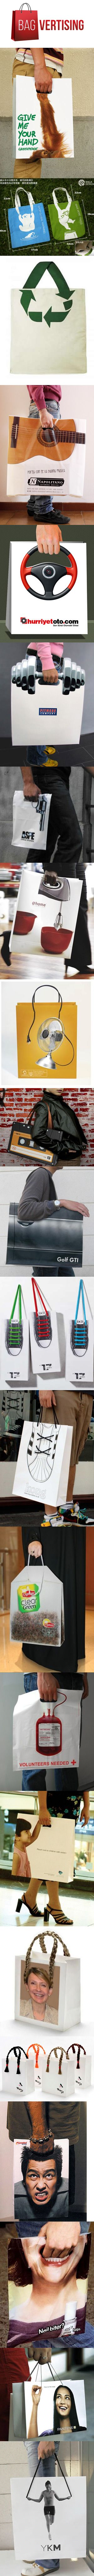 super creative guerrilla marketing solutions using BAGVERTISING